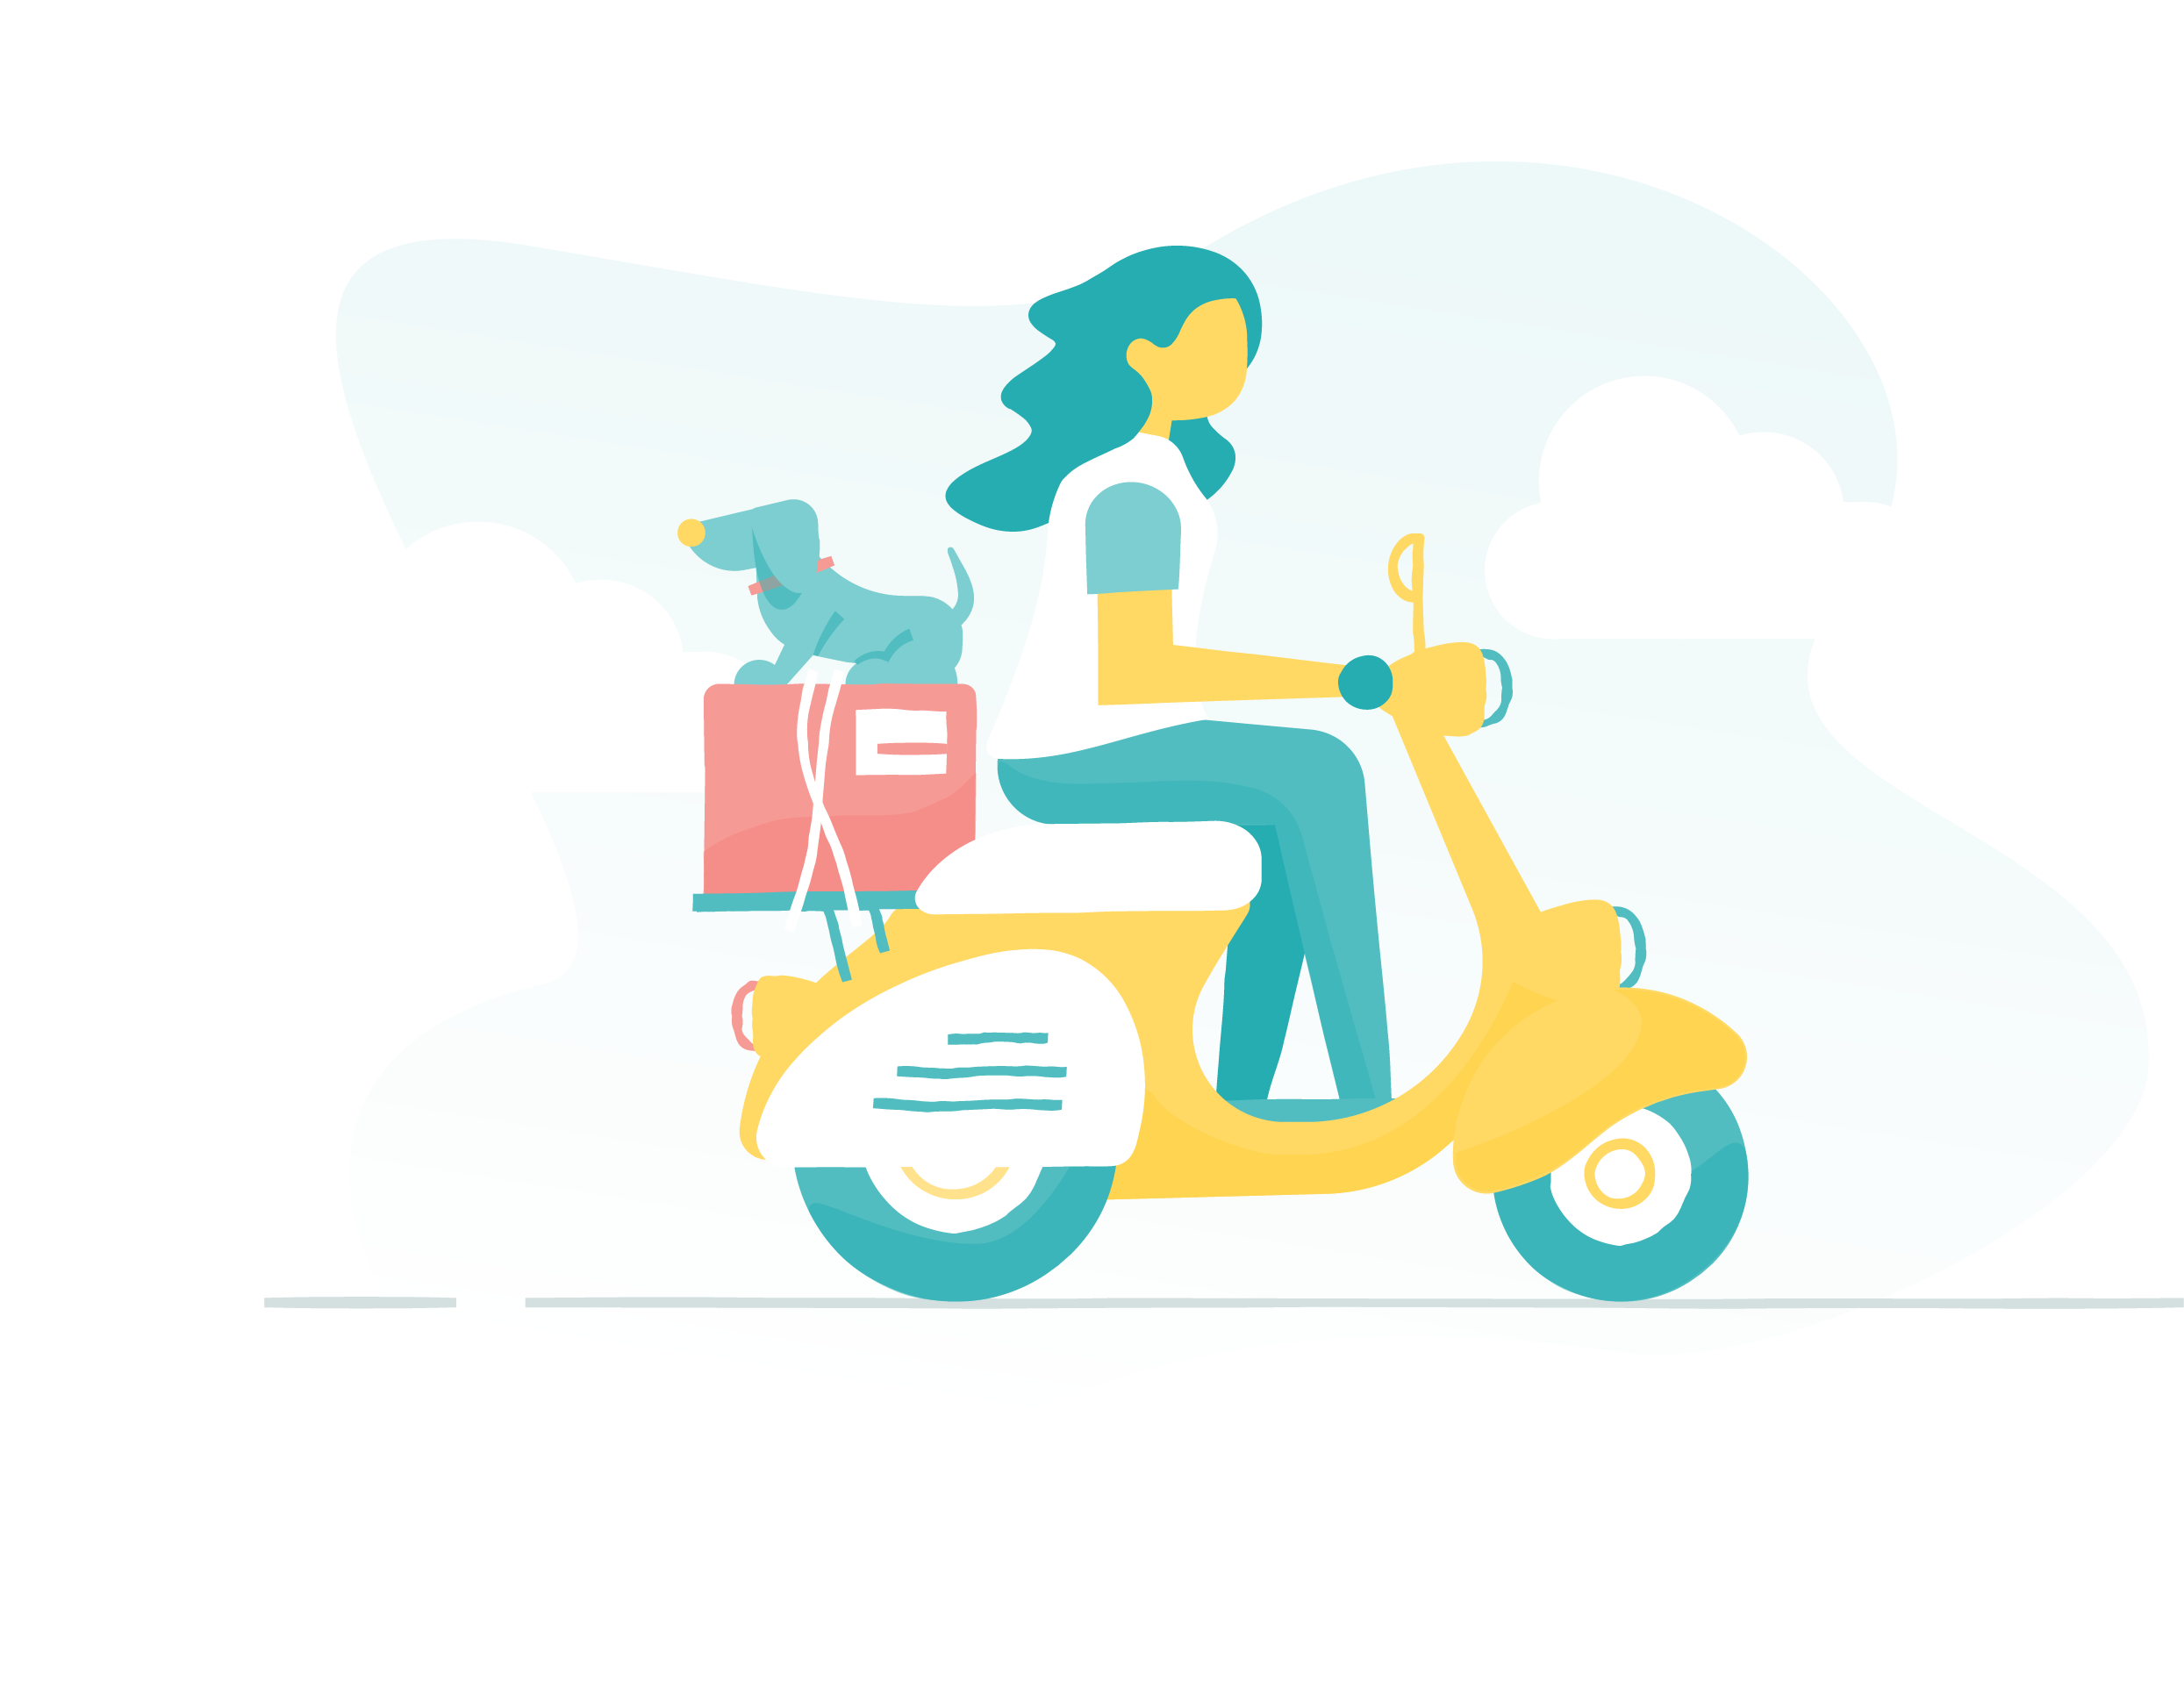 Scooter clipart driving school. Guides subscription box shipping